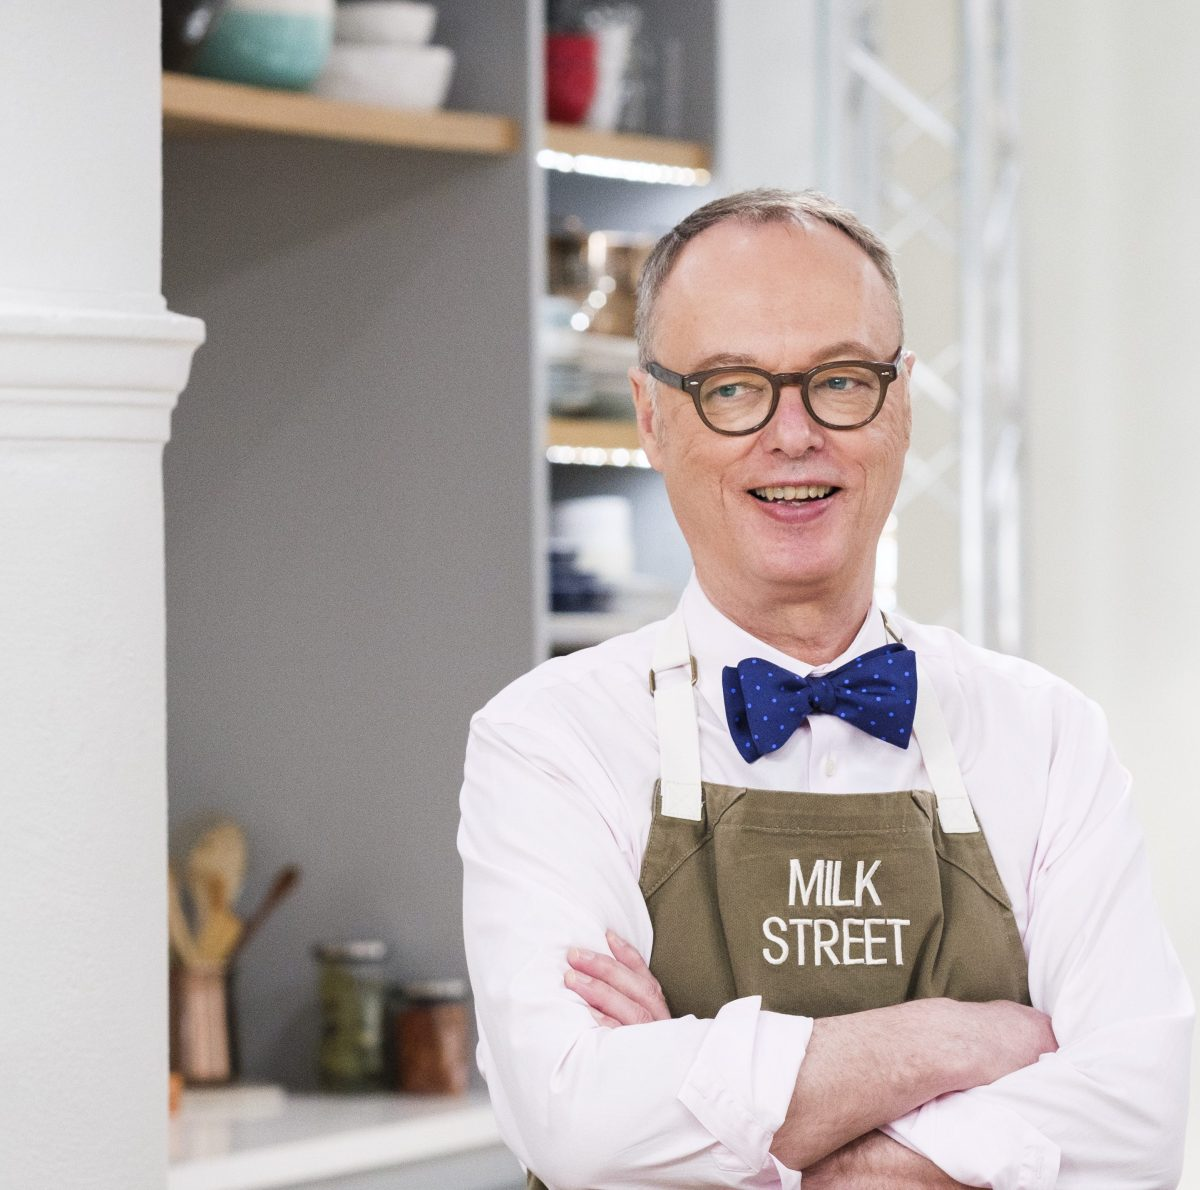 Christopher Kimball on running a new business and ditching the old rules on cooking